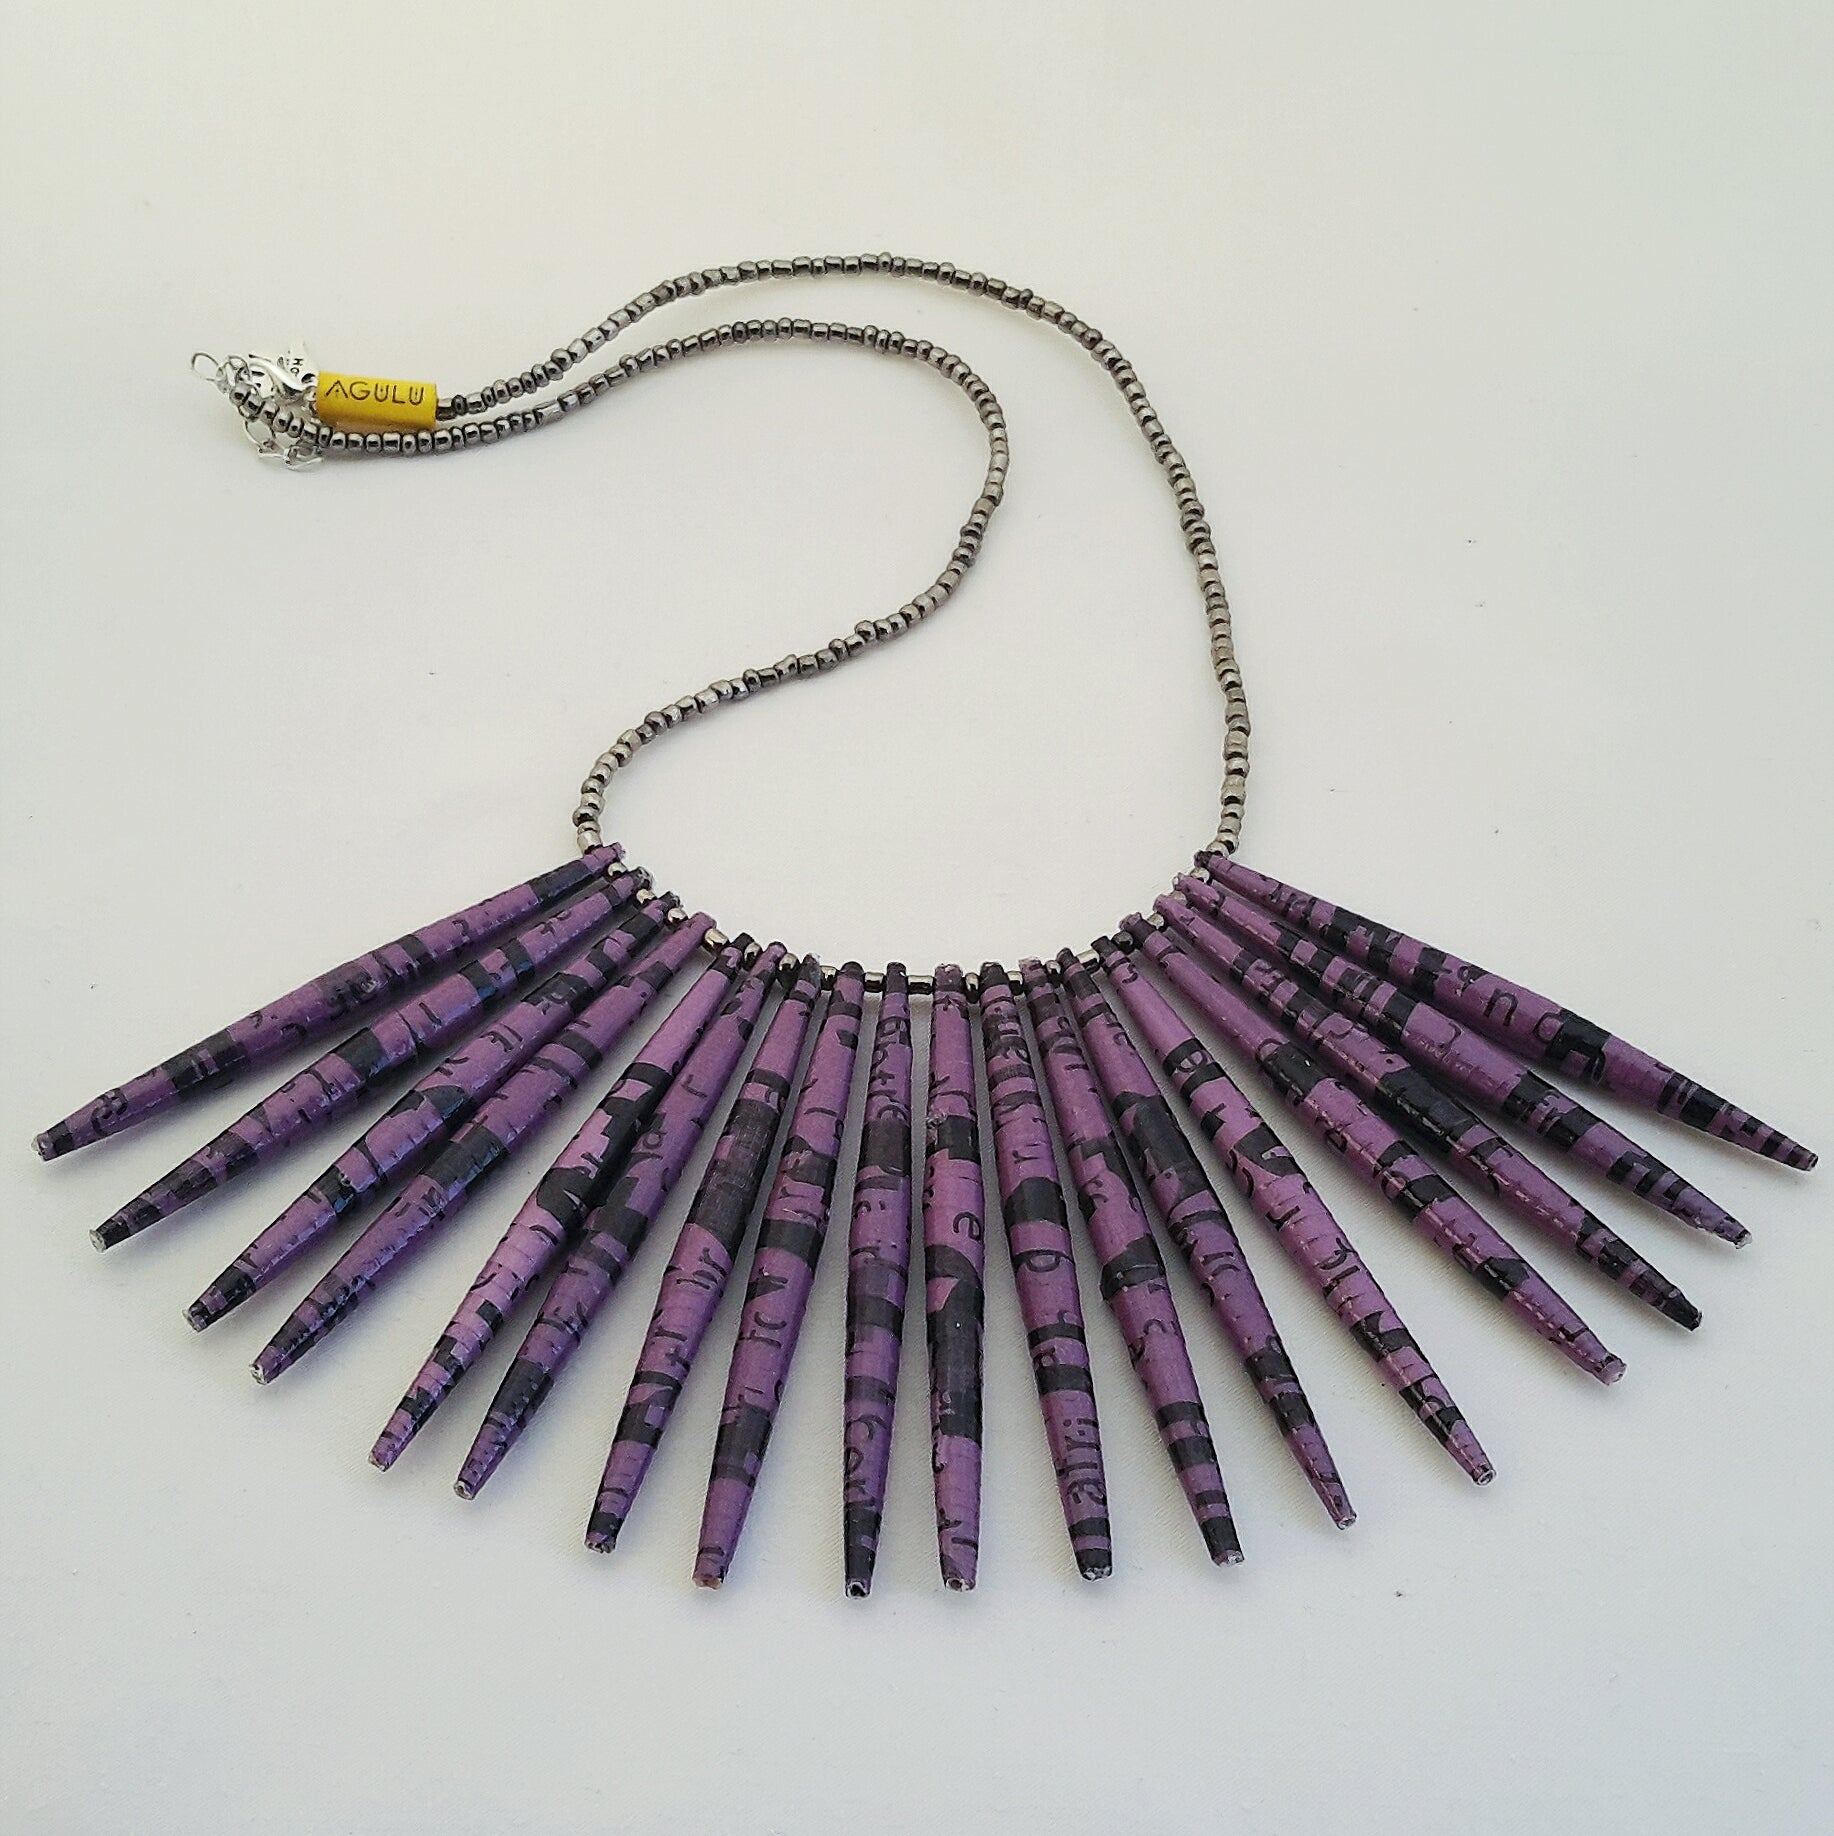 Purple / Violet hand made design paper bead necklace made out of recycled paper in Uganda by principles of fair trade, ethical and sustainable fashion, empowering women of post war area, by Finnish / Scandinavian brand, Agulu Paper Beads. Eettinen lila / violetti käsintehty design kaulakoru, joka on tehty kierrätyspaperista reilun kaupan periaattein työllistämällä kehitysmaan nasia.